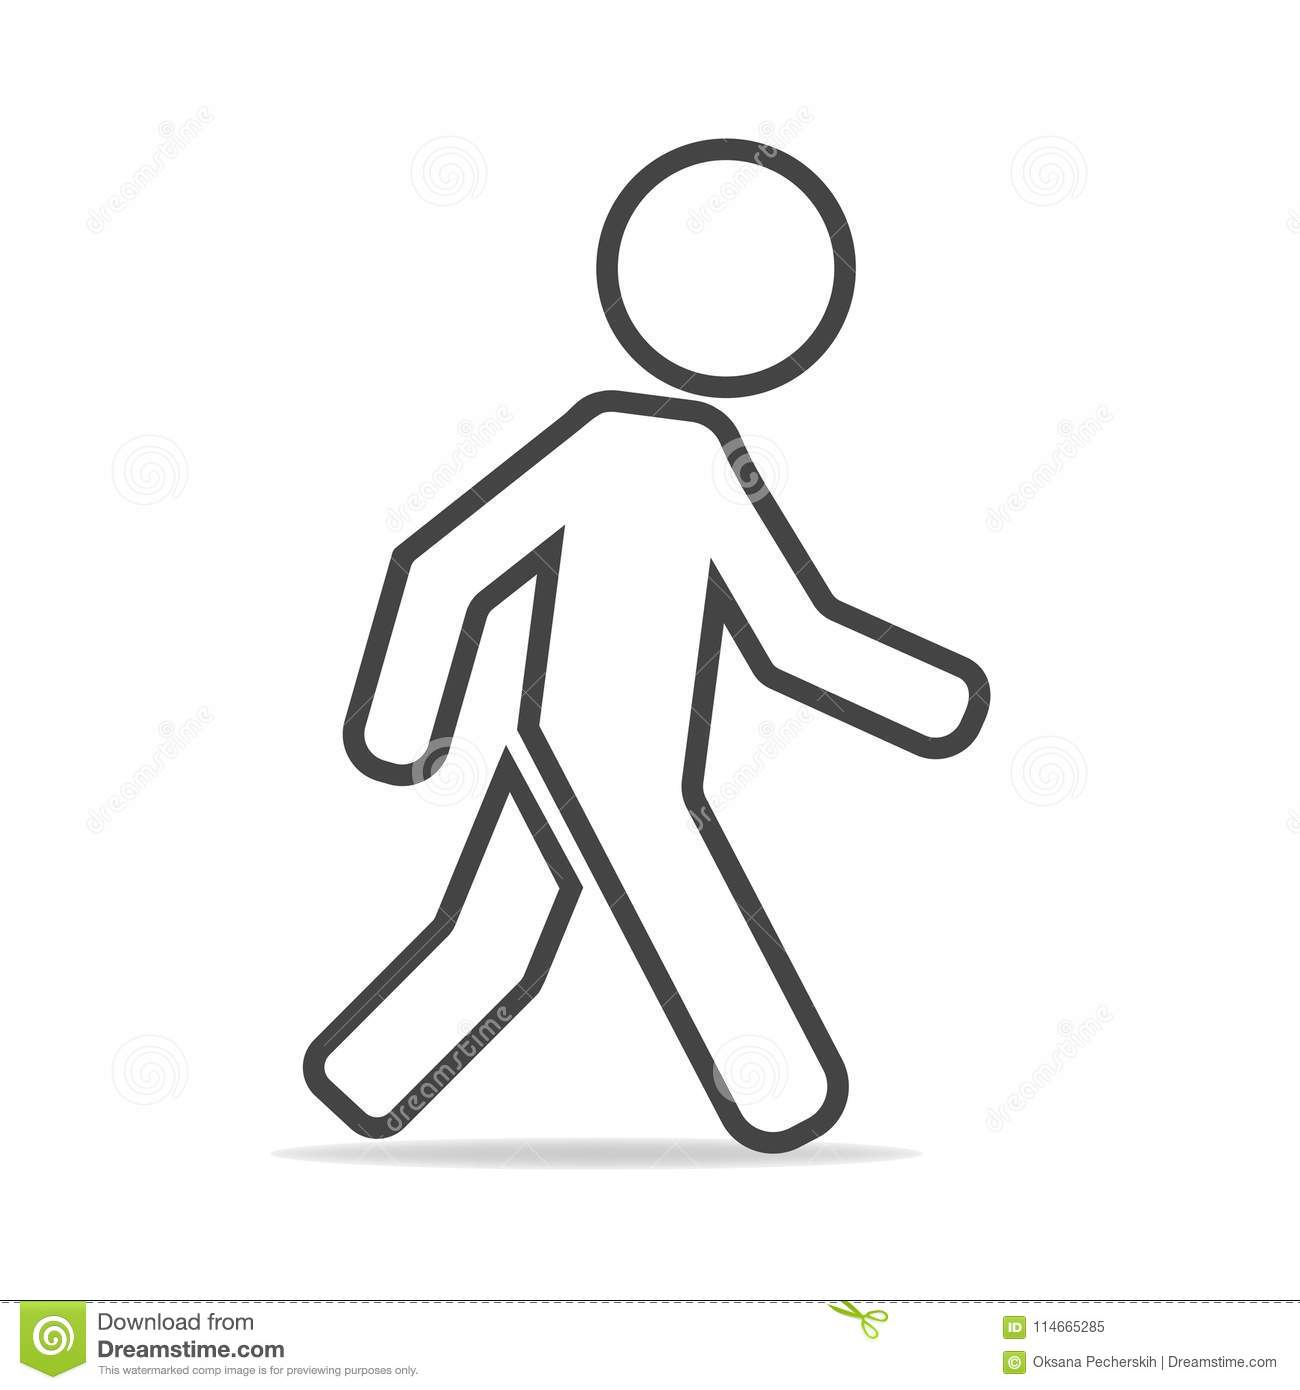 Vector icon of a walking pedestrian. Illustration of a walking m